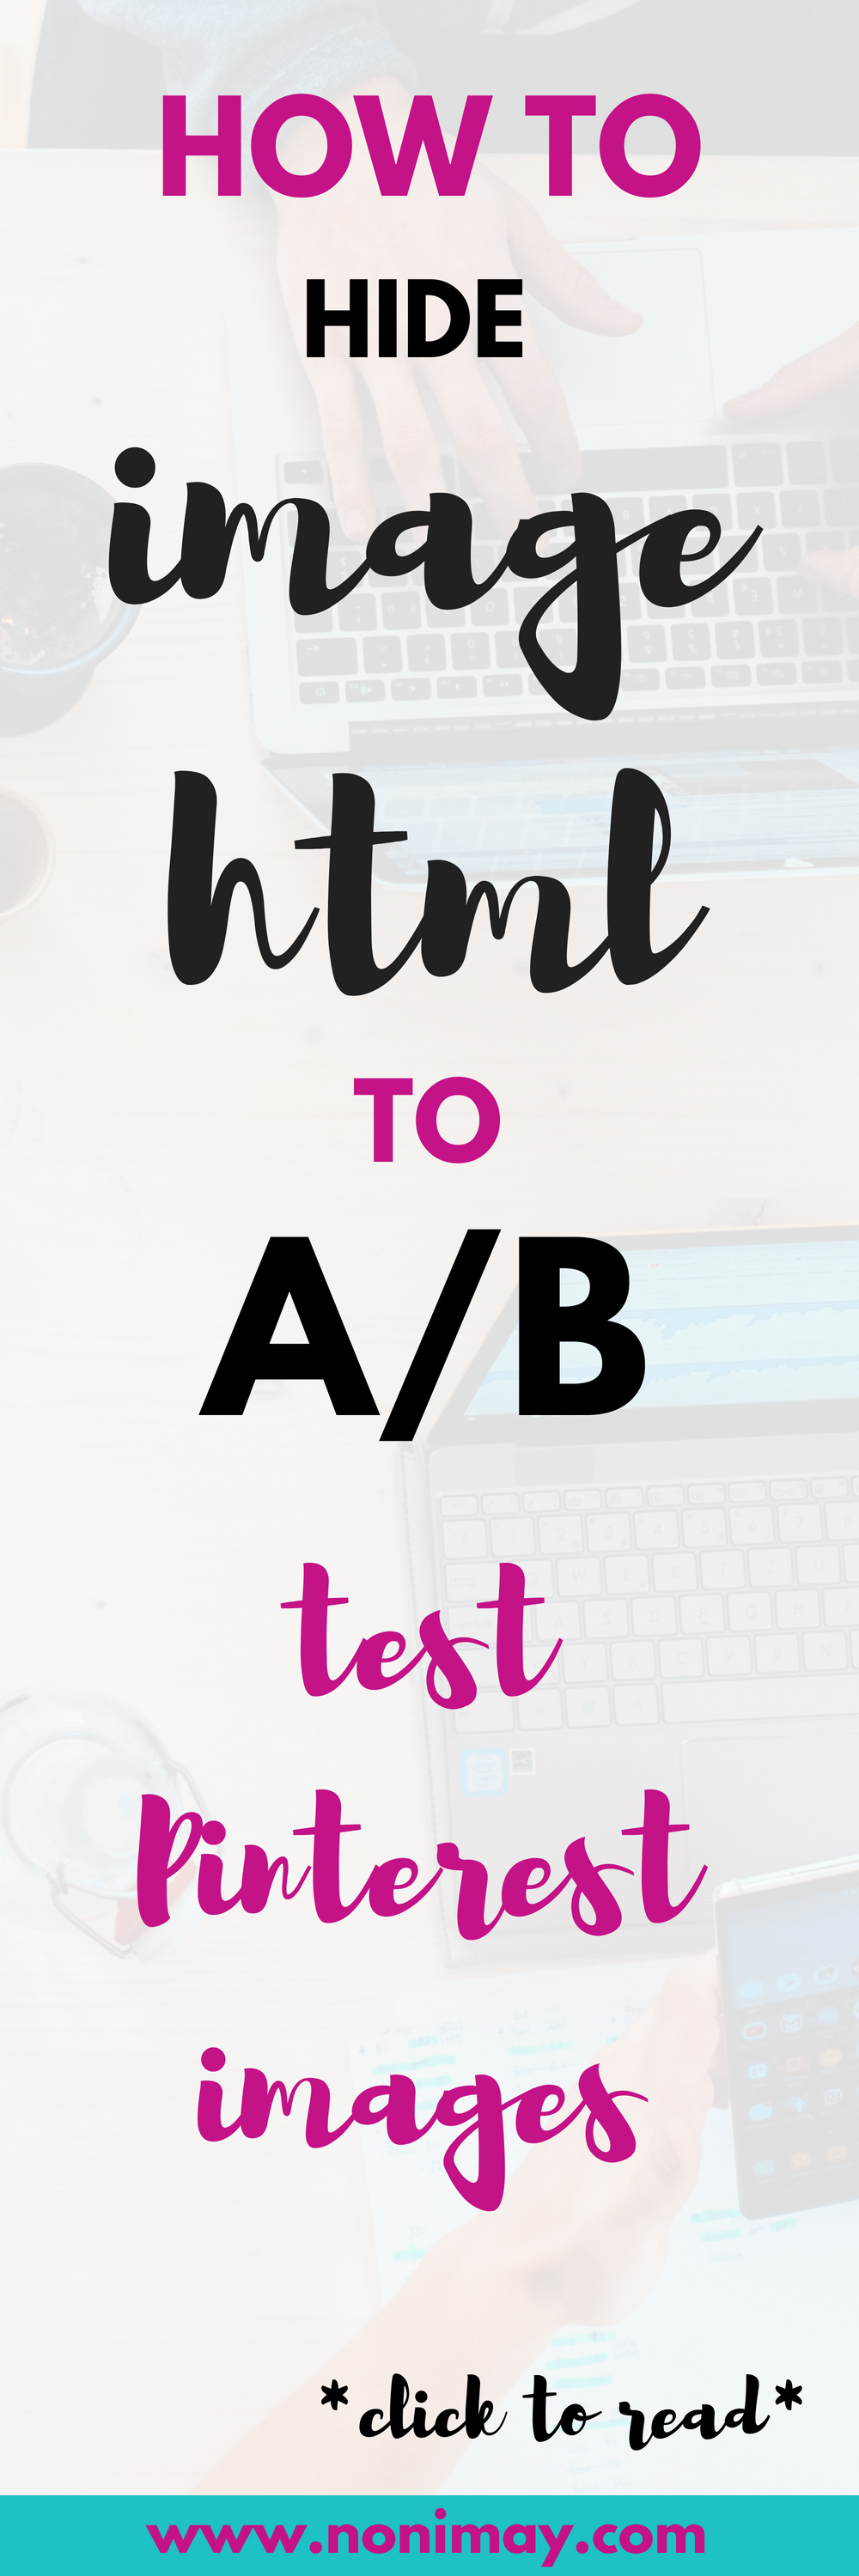 How to hide image html to A/B test Pinterest images for more traffic